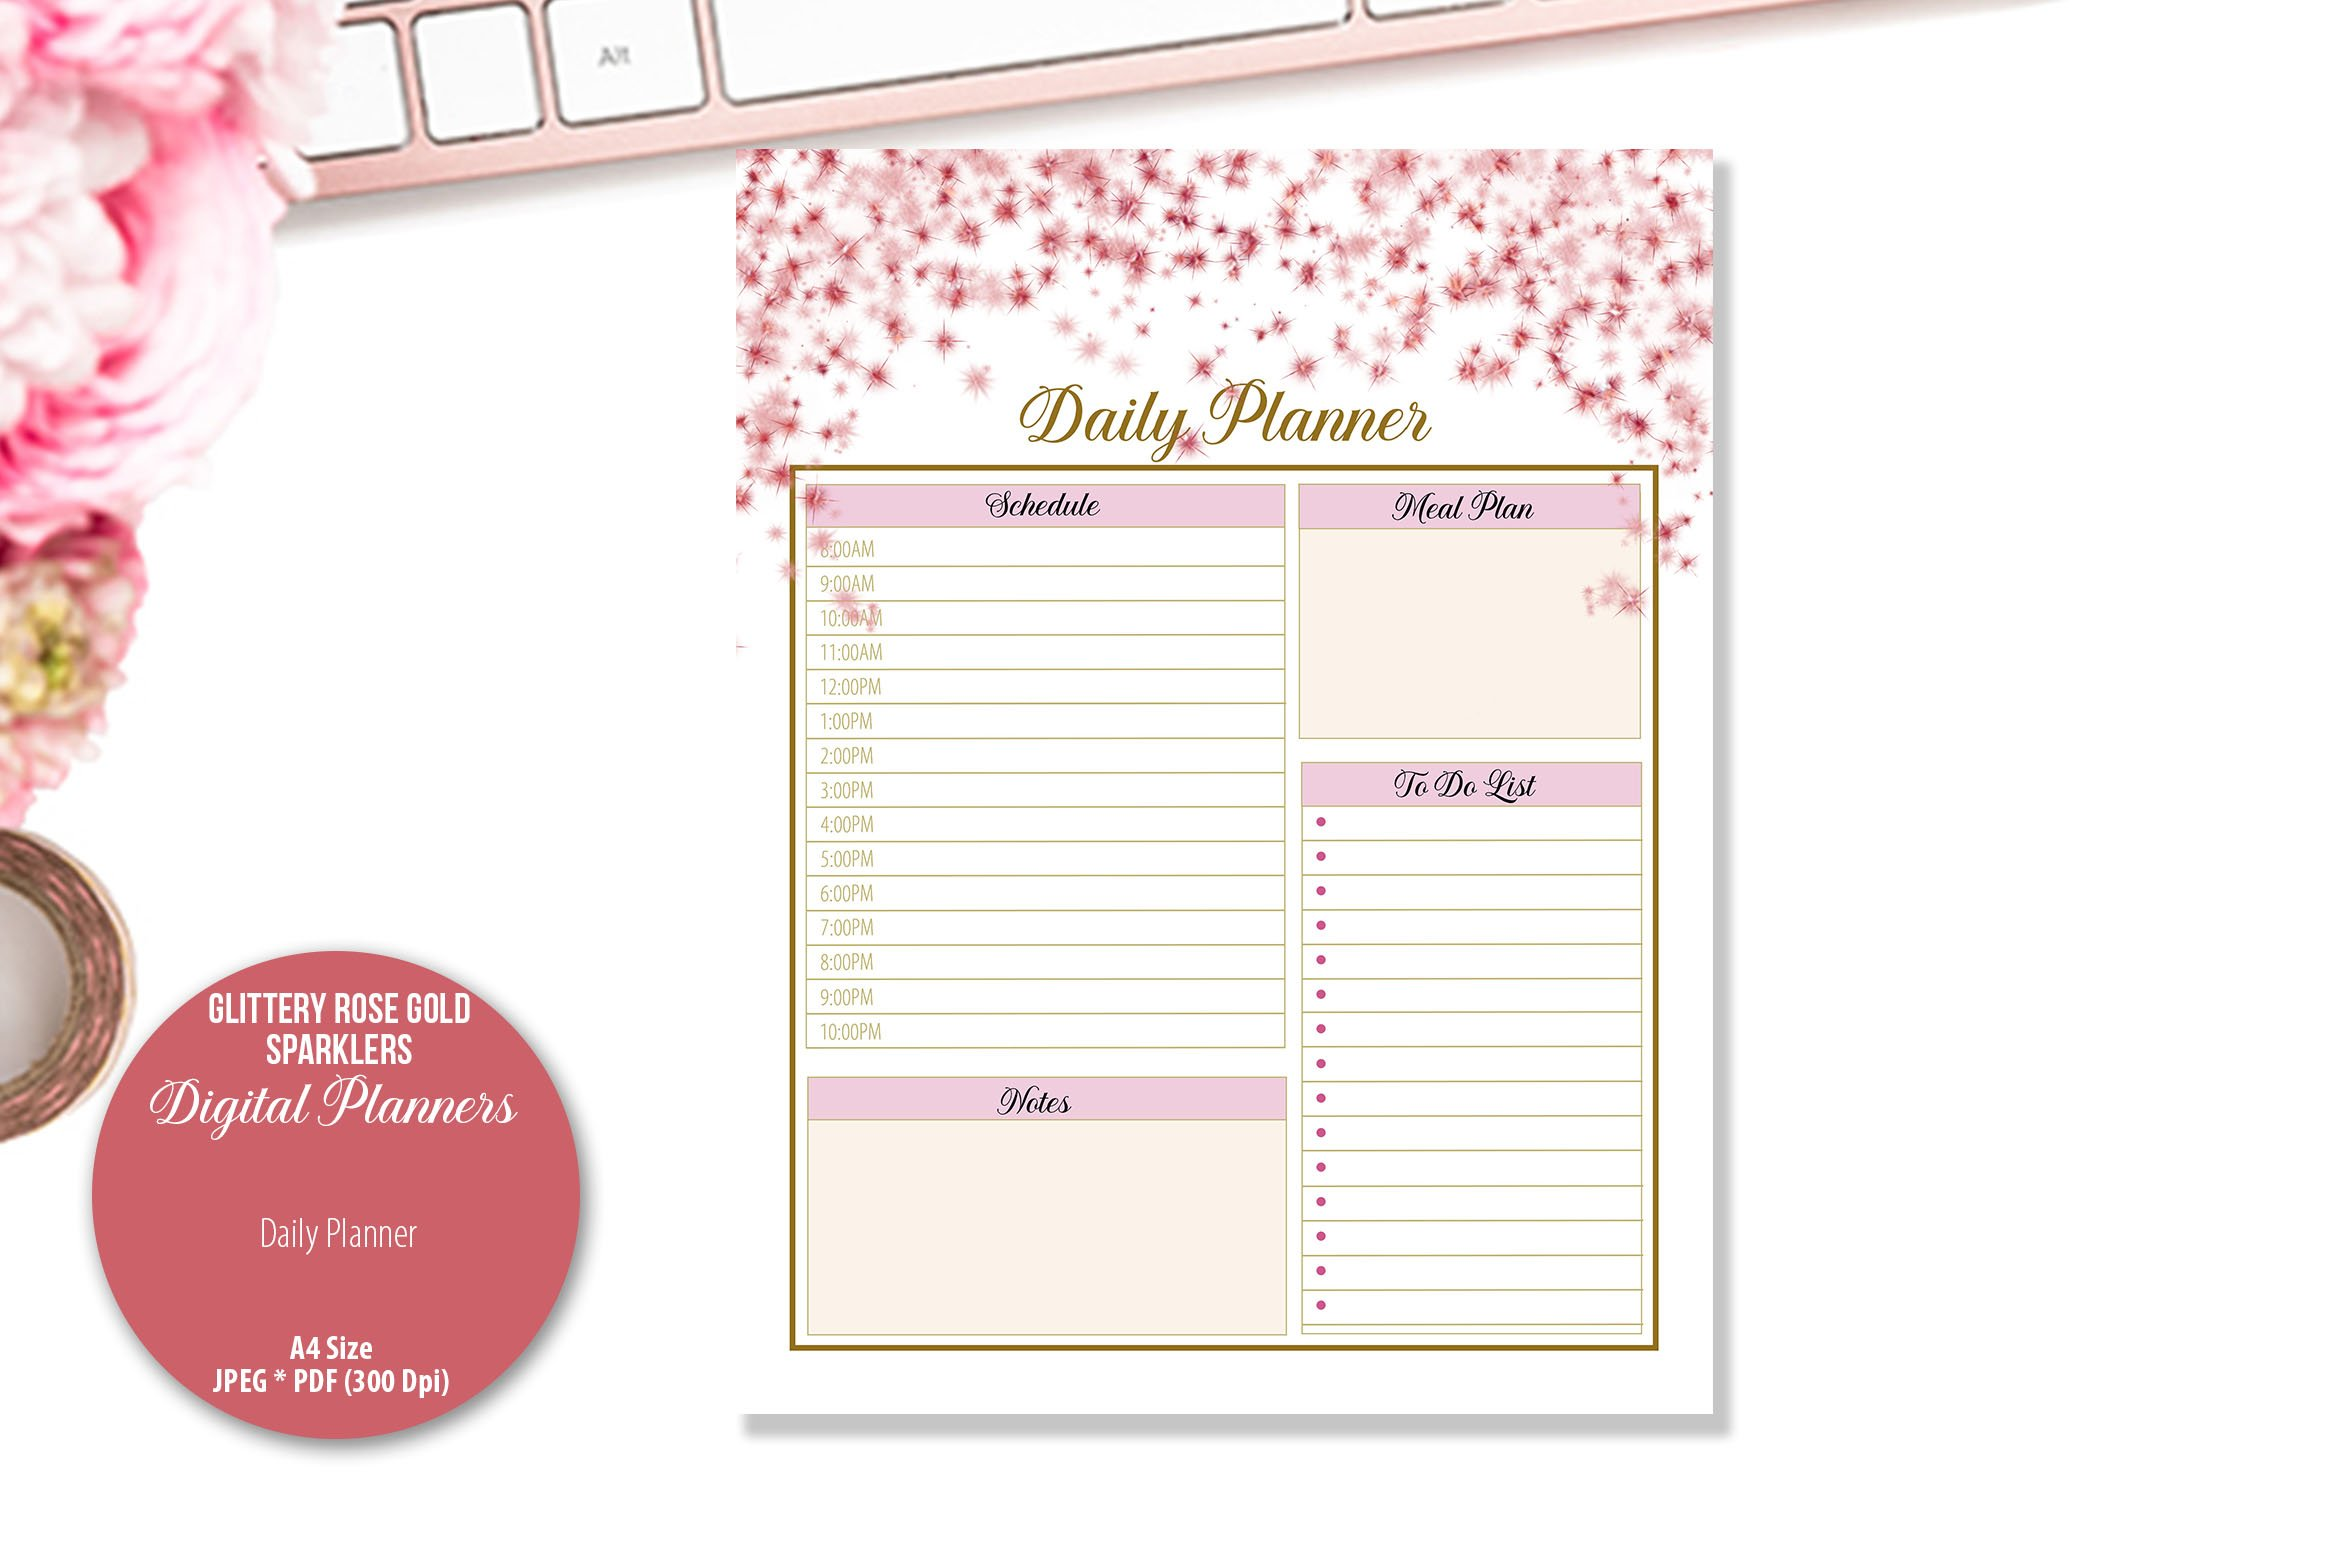 Glittery Rose Gold Sparklers Digital Planner example image 2